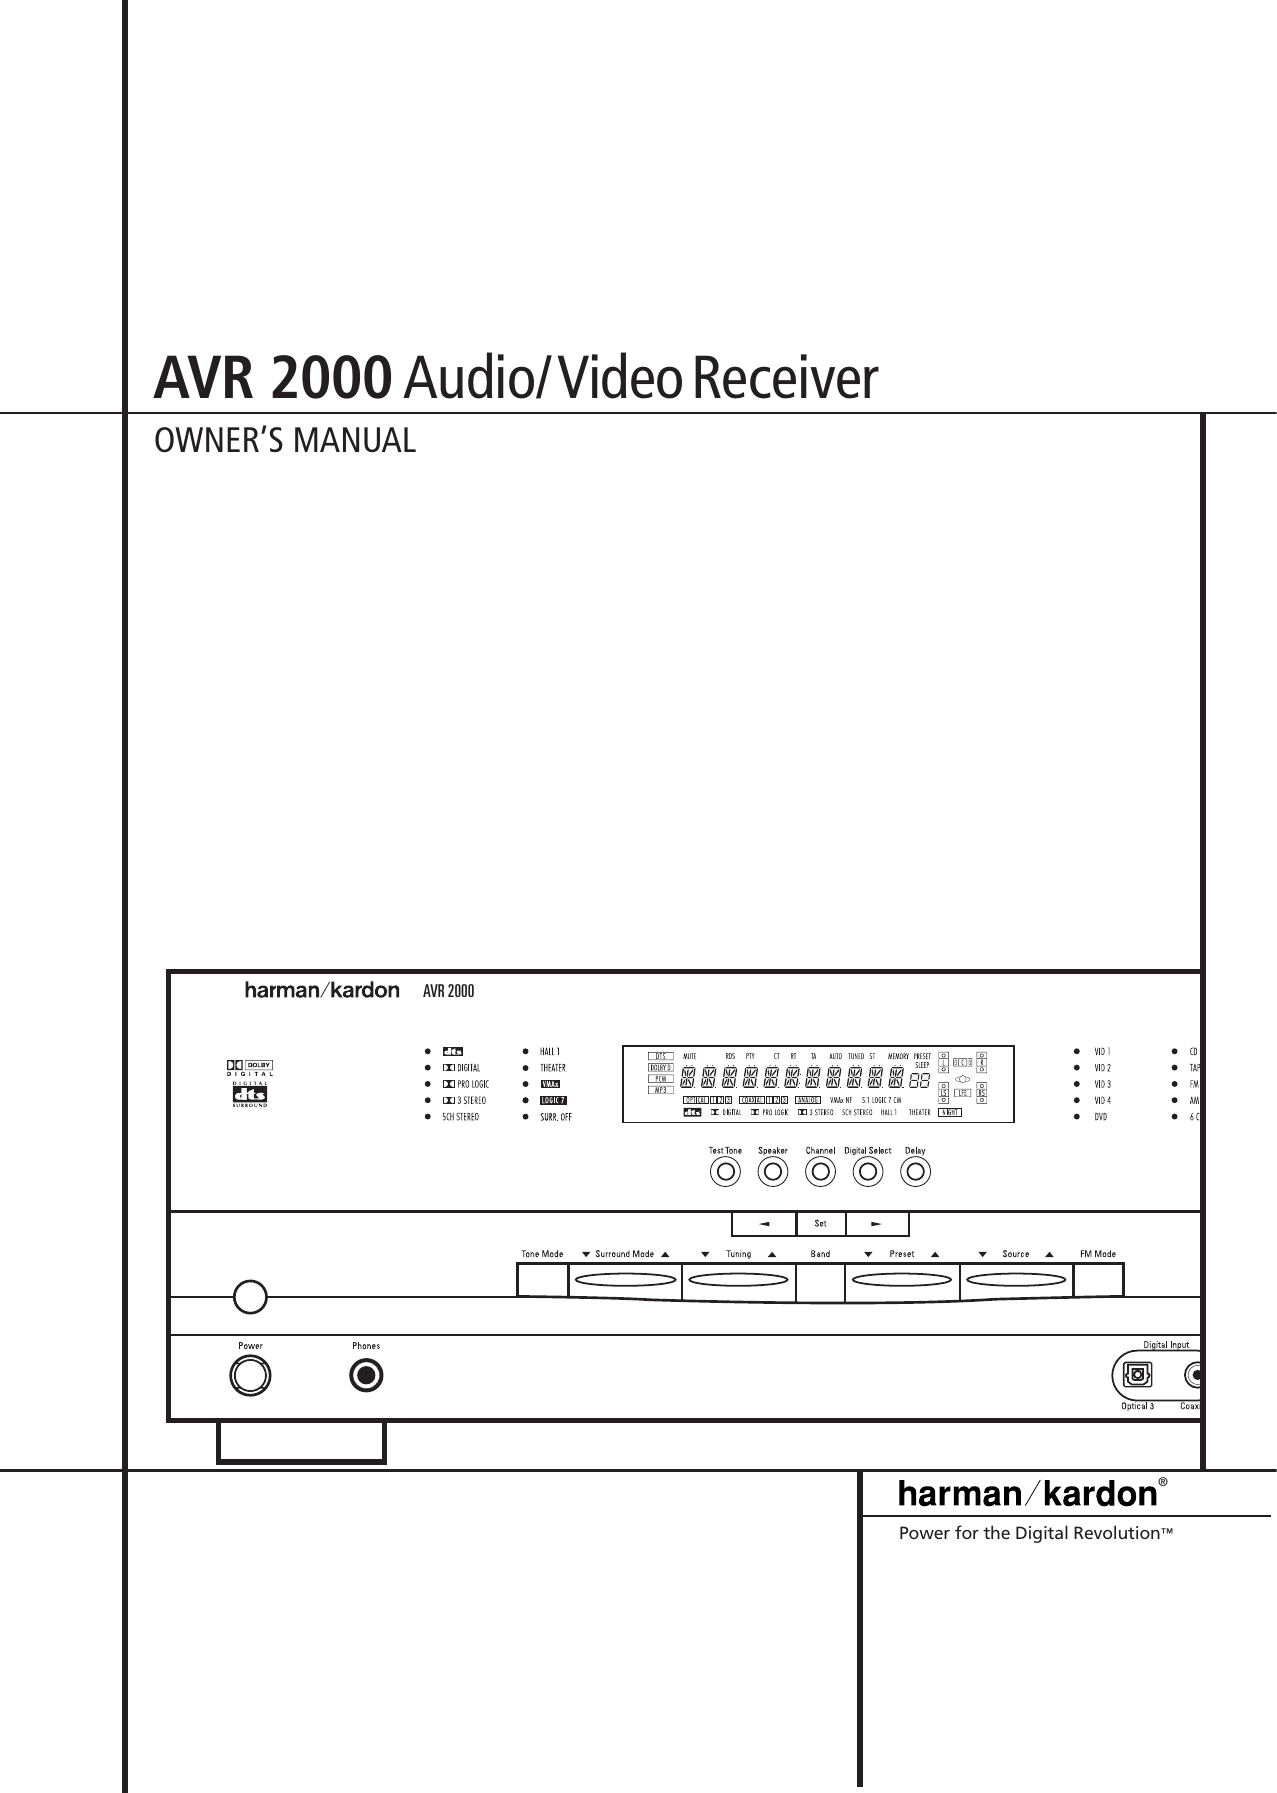 Harman Kardon Avr 2000 Users Manual on